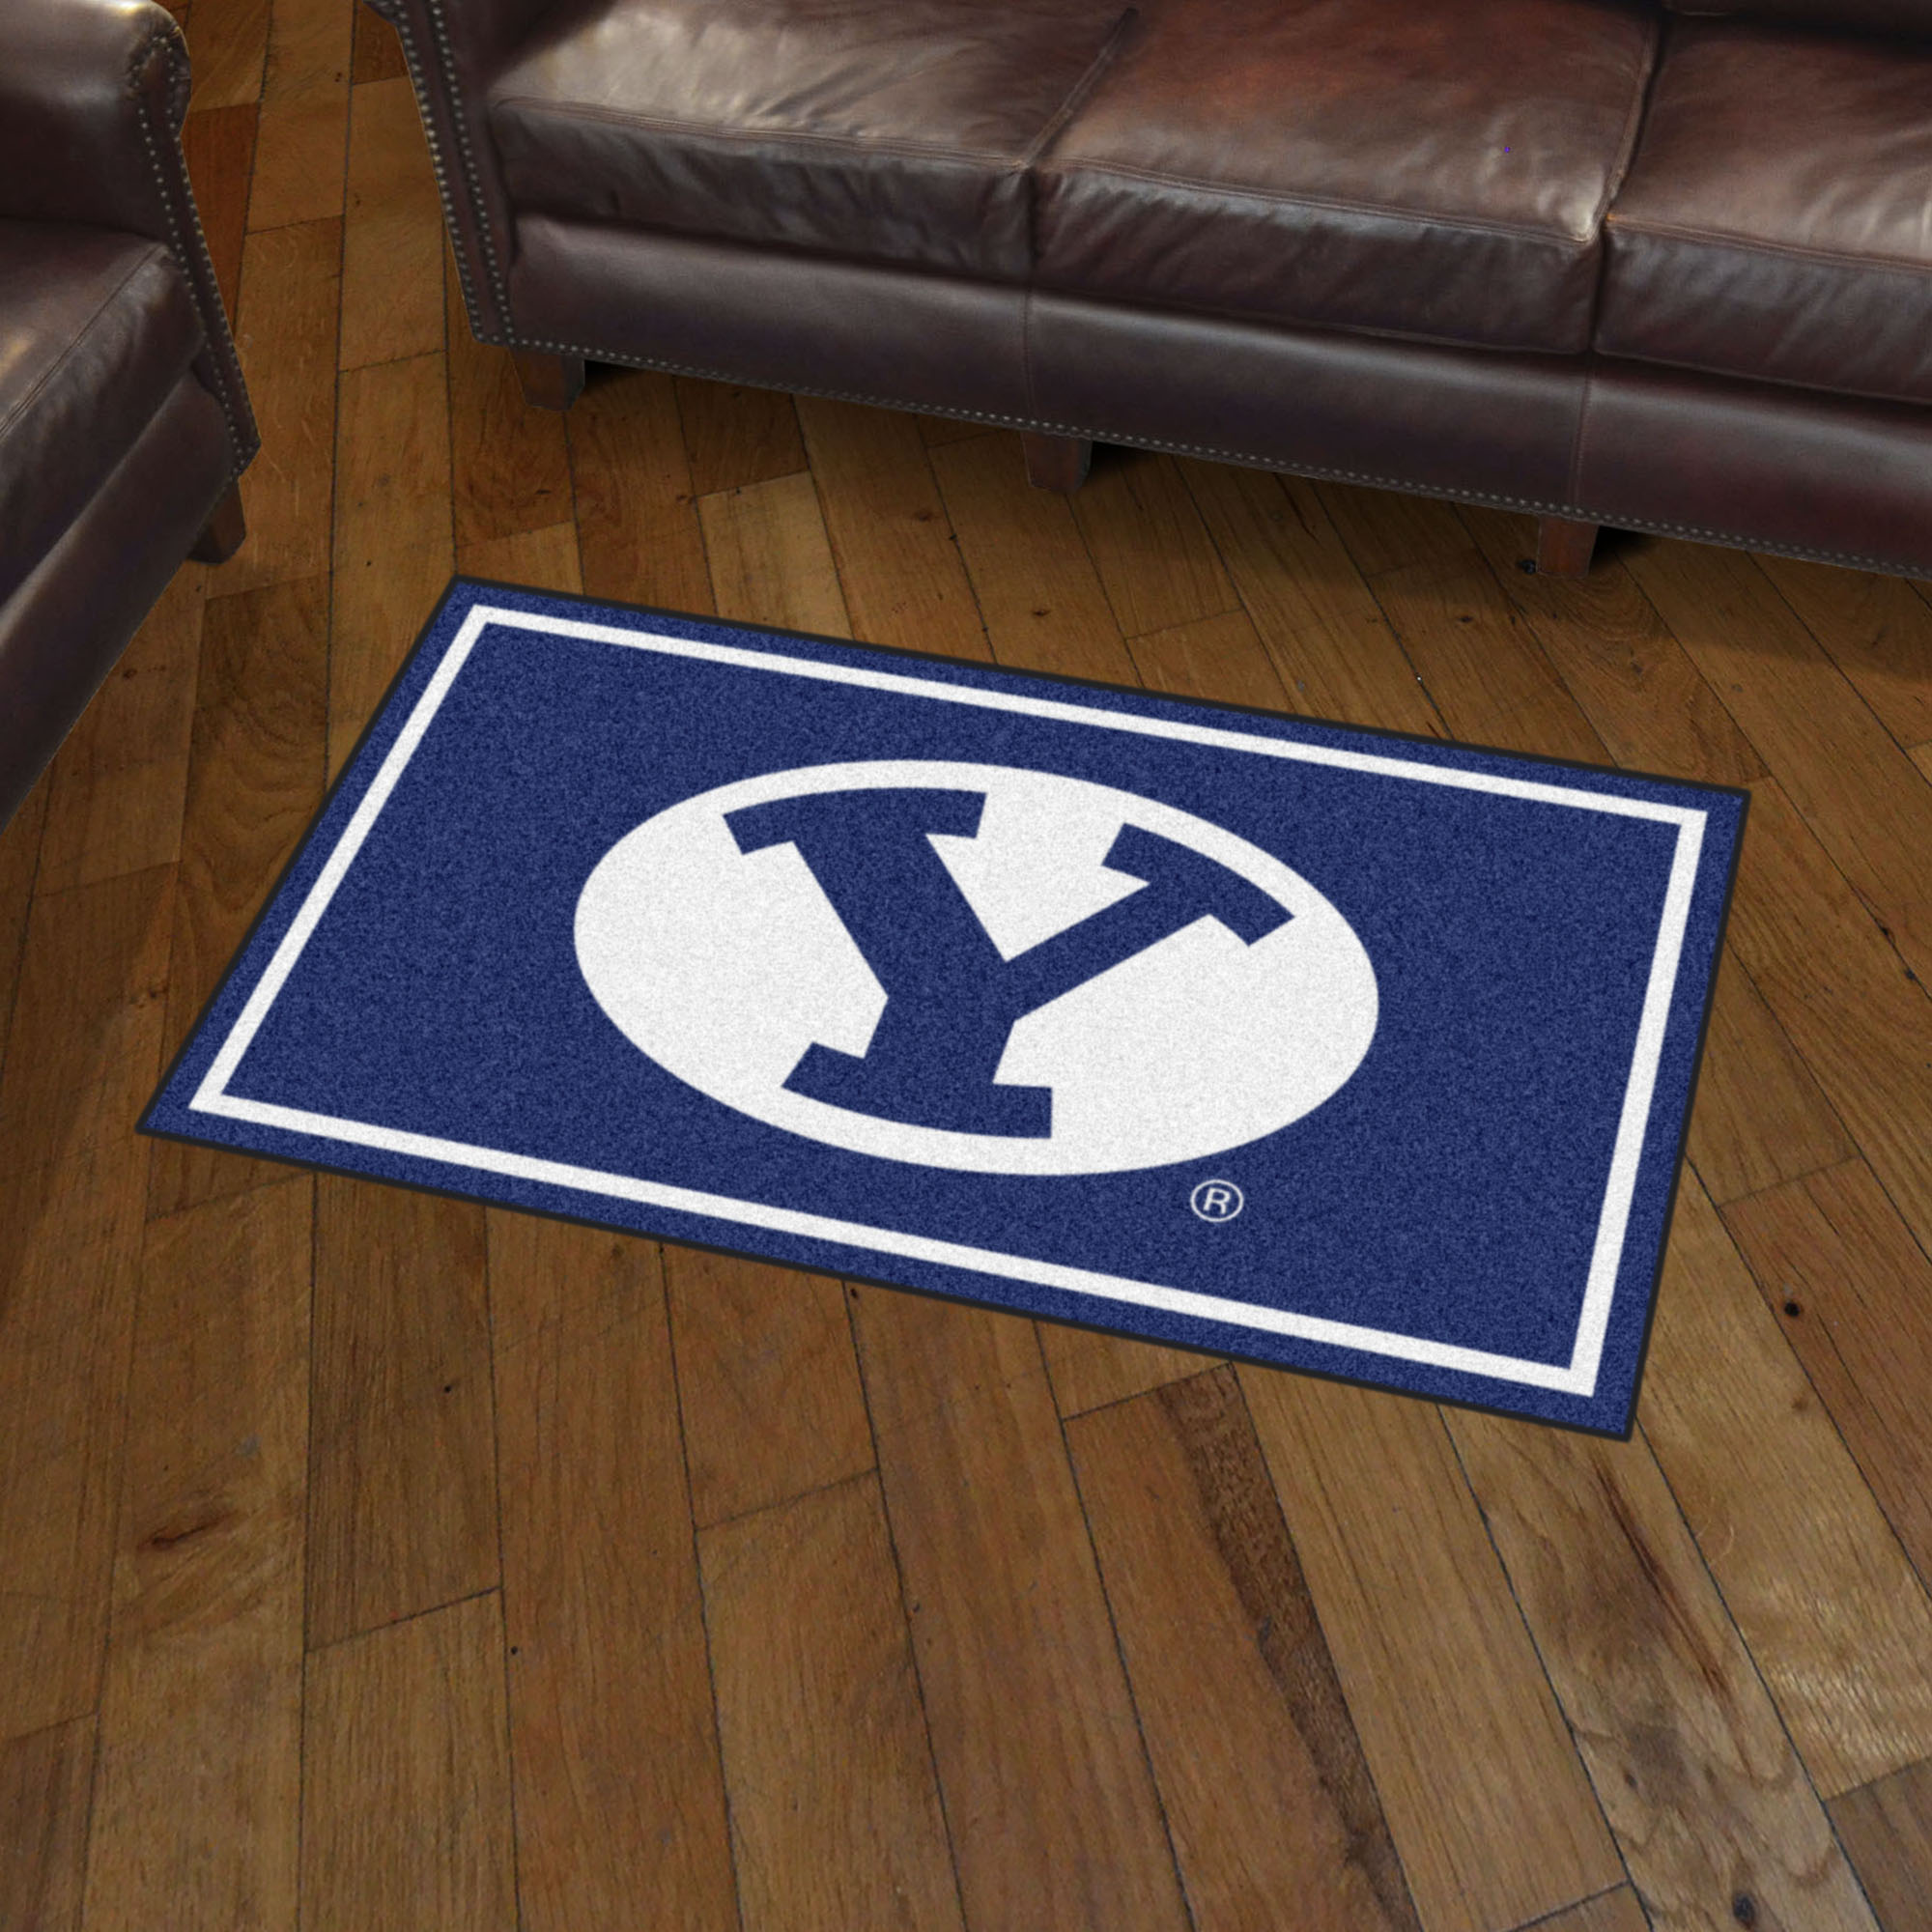 BYU Cougars 3x5 Area Rug